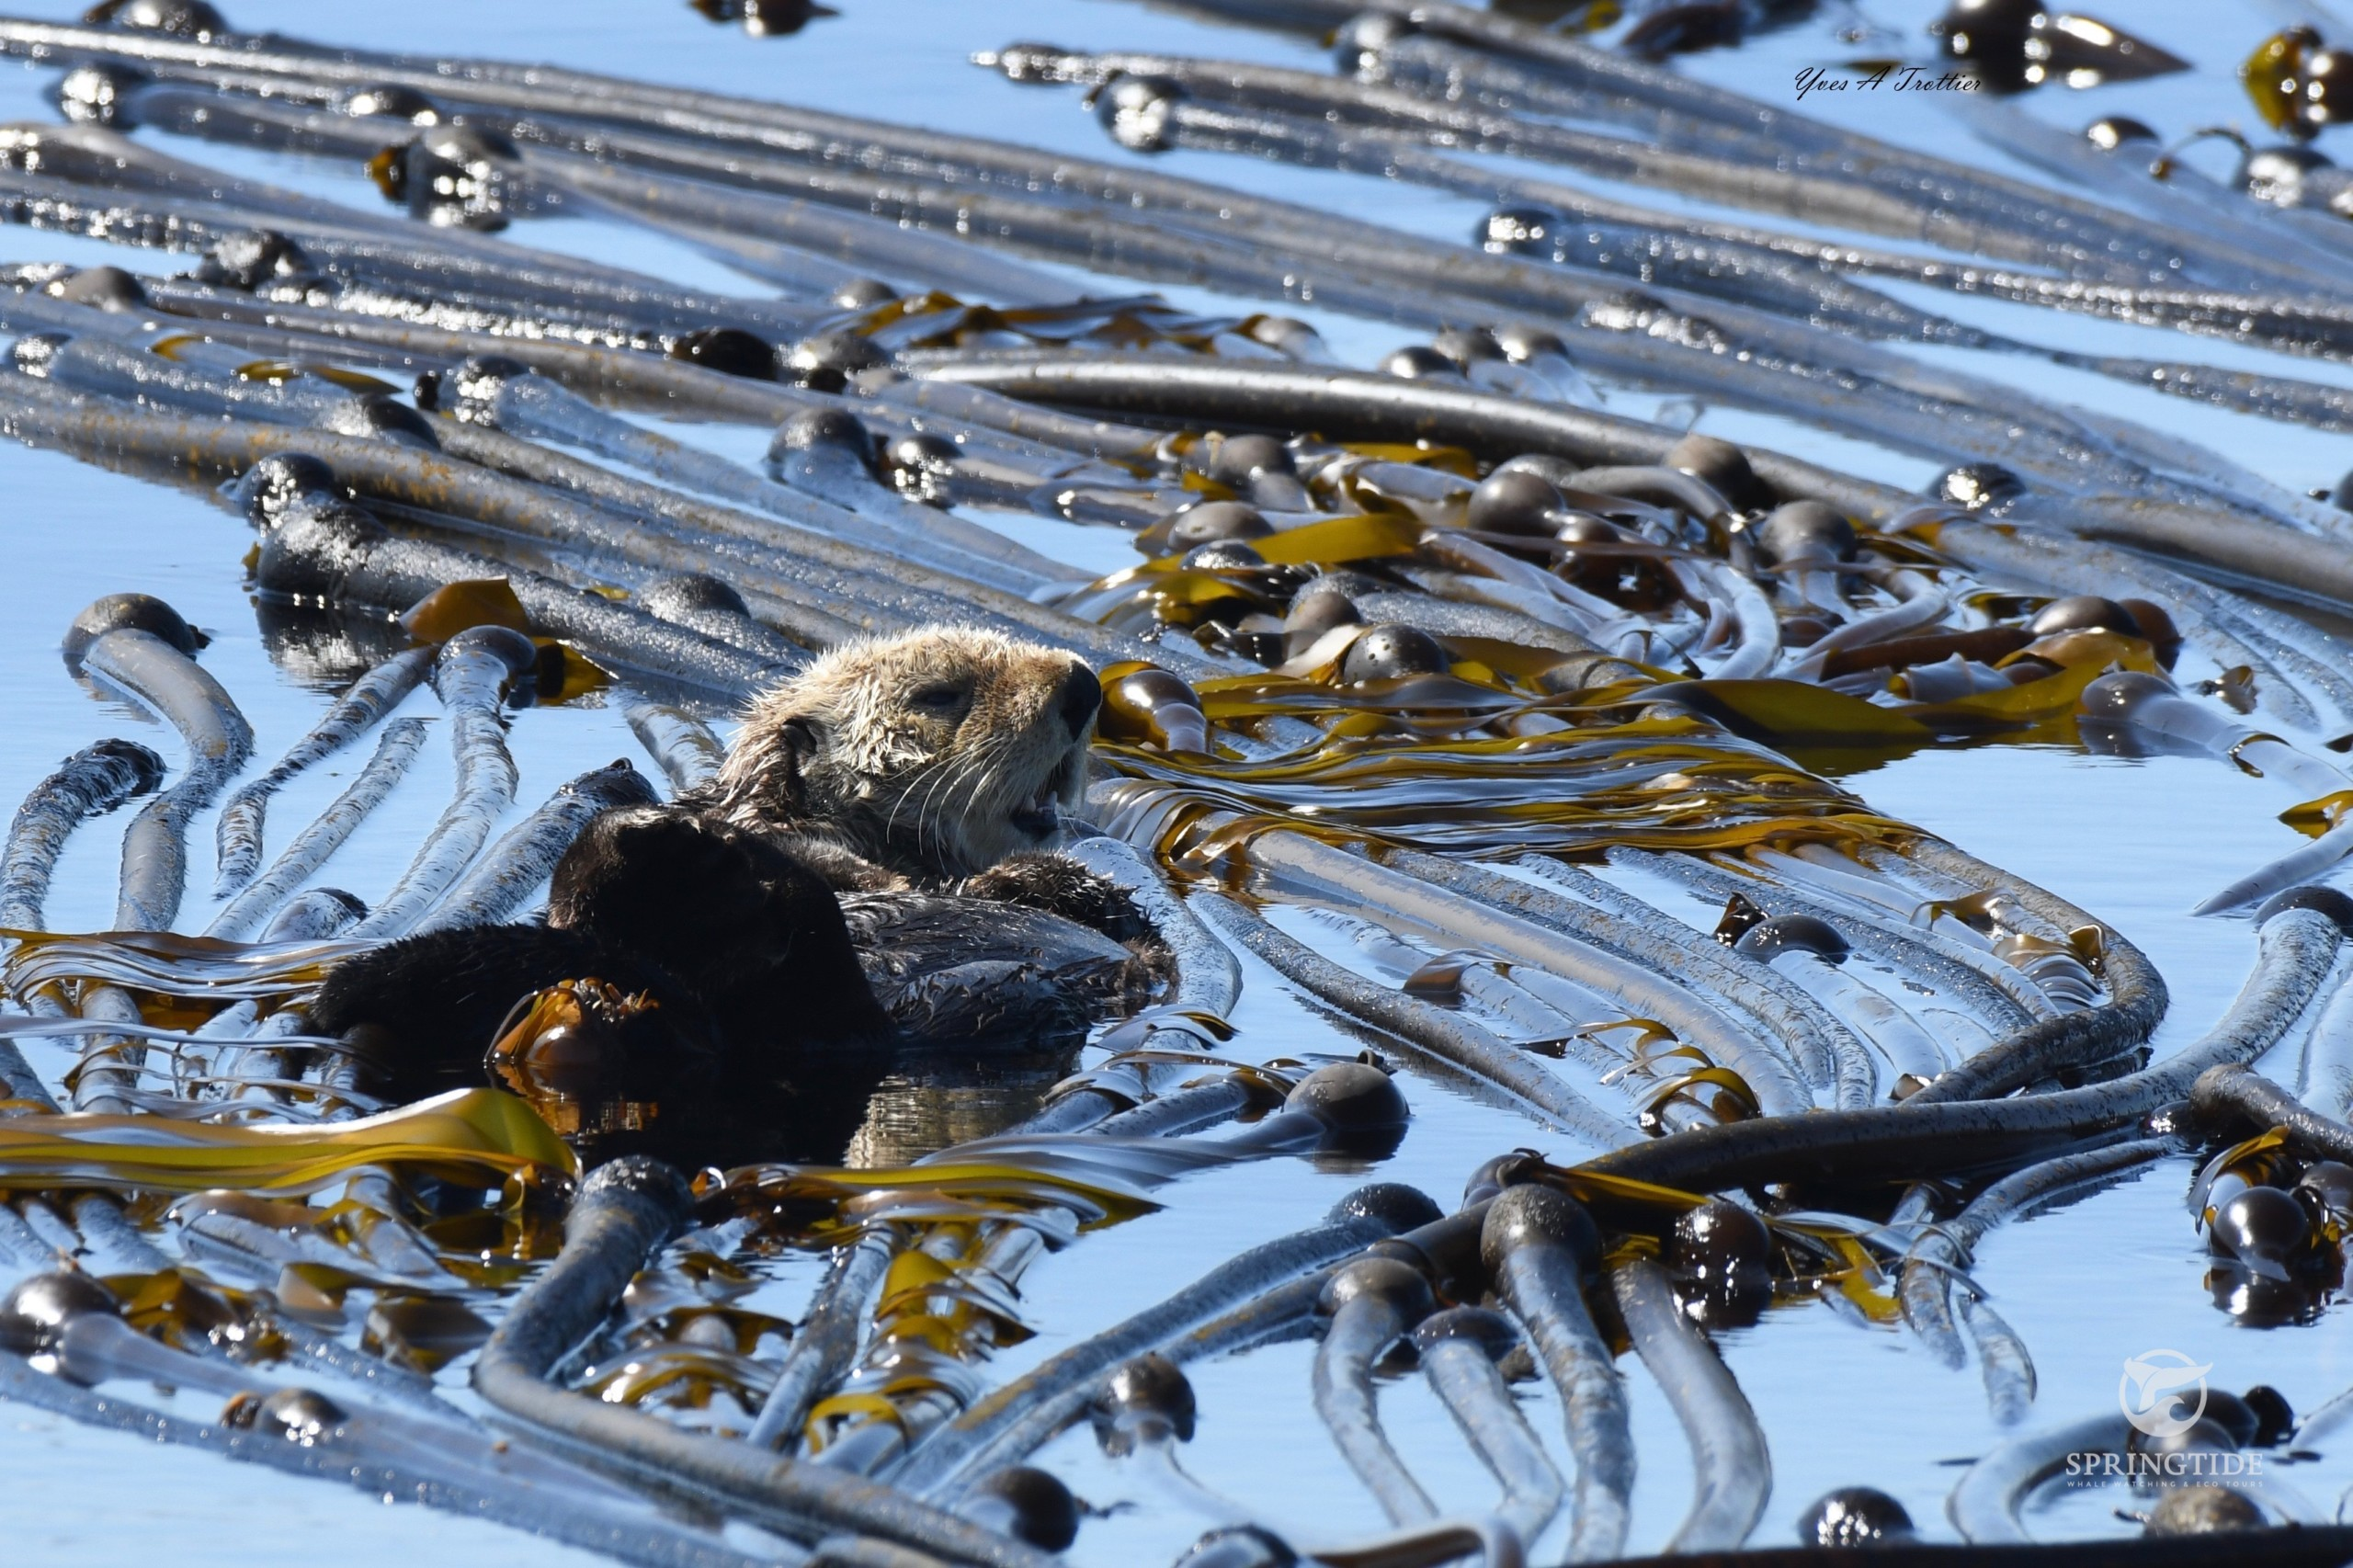 Harry Otter in a Kelp bed. Picture taken by SpringTide Crew with a zoom lens.